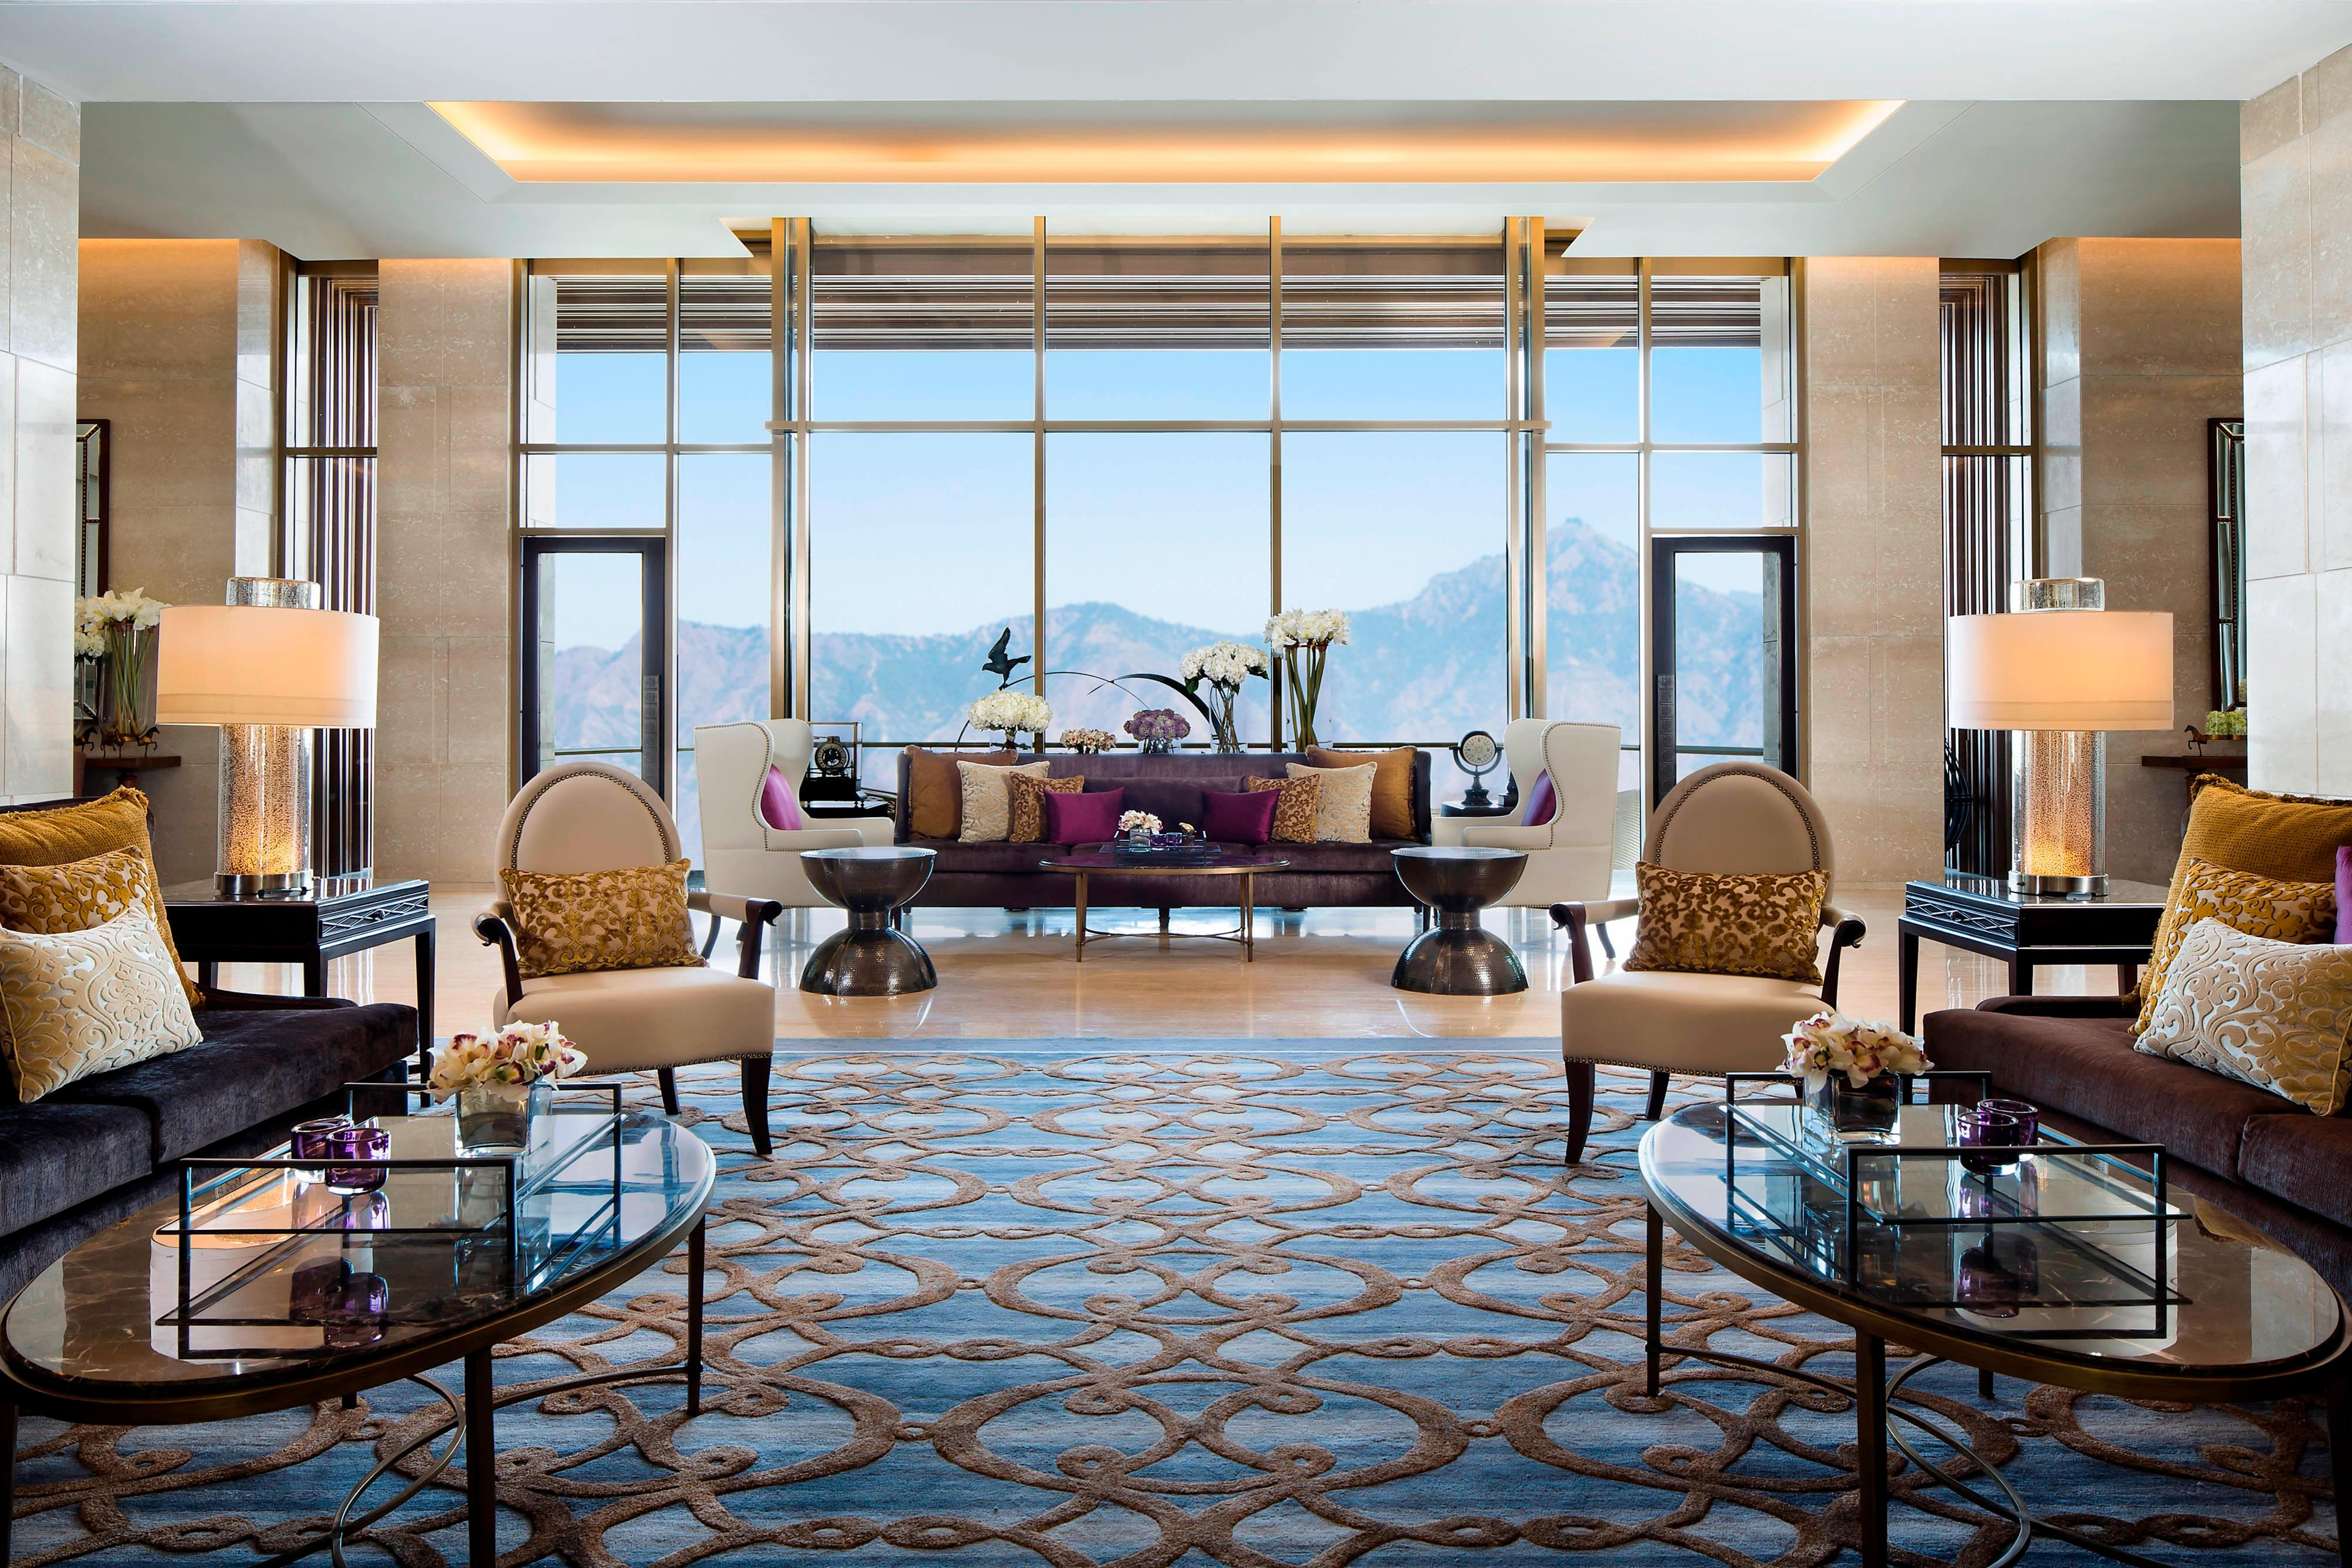 Luxury Hotel Lobby in Mussoorie